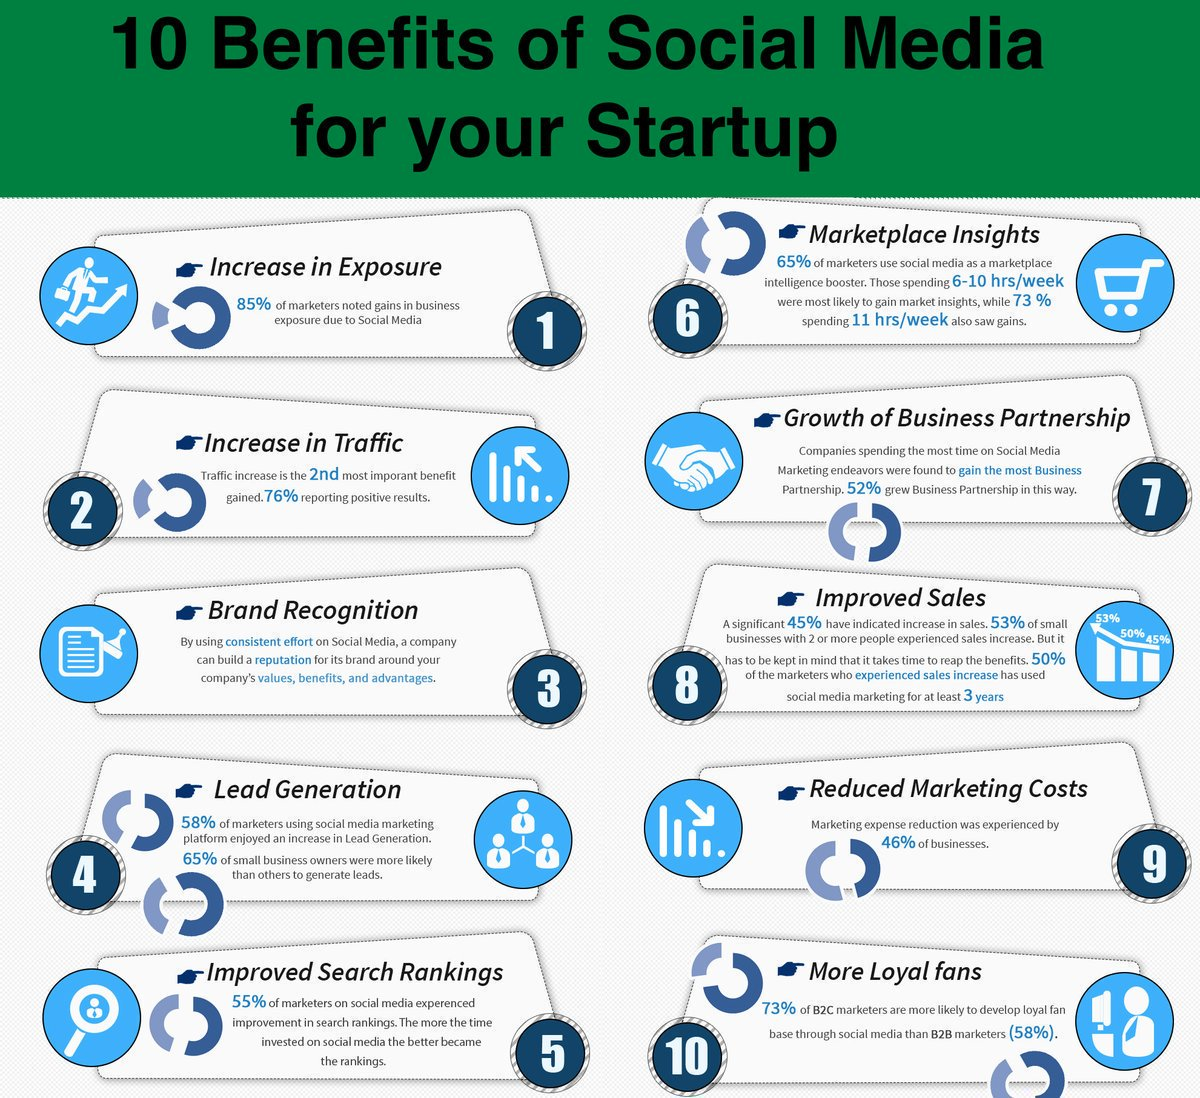 10 Benefits of #SocialMedia for Your #Startup Success [Infographic] #SMM #SocialMediaMarketing #LeadGeneration #Sales #SEO #makeyourownlane<br>http://pic.twitter.com/wPpbCH0RxT